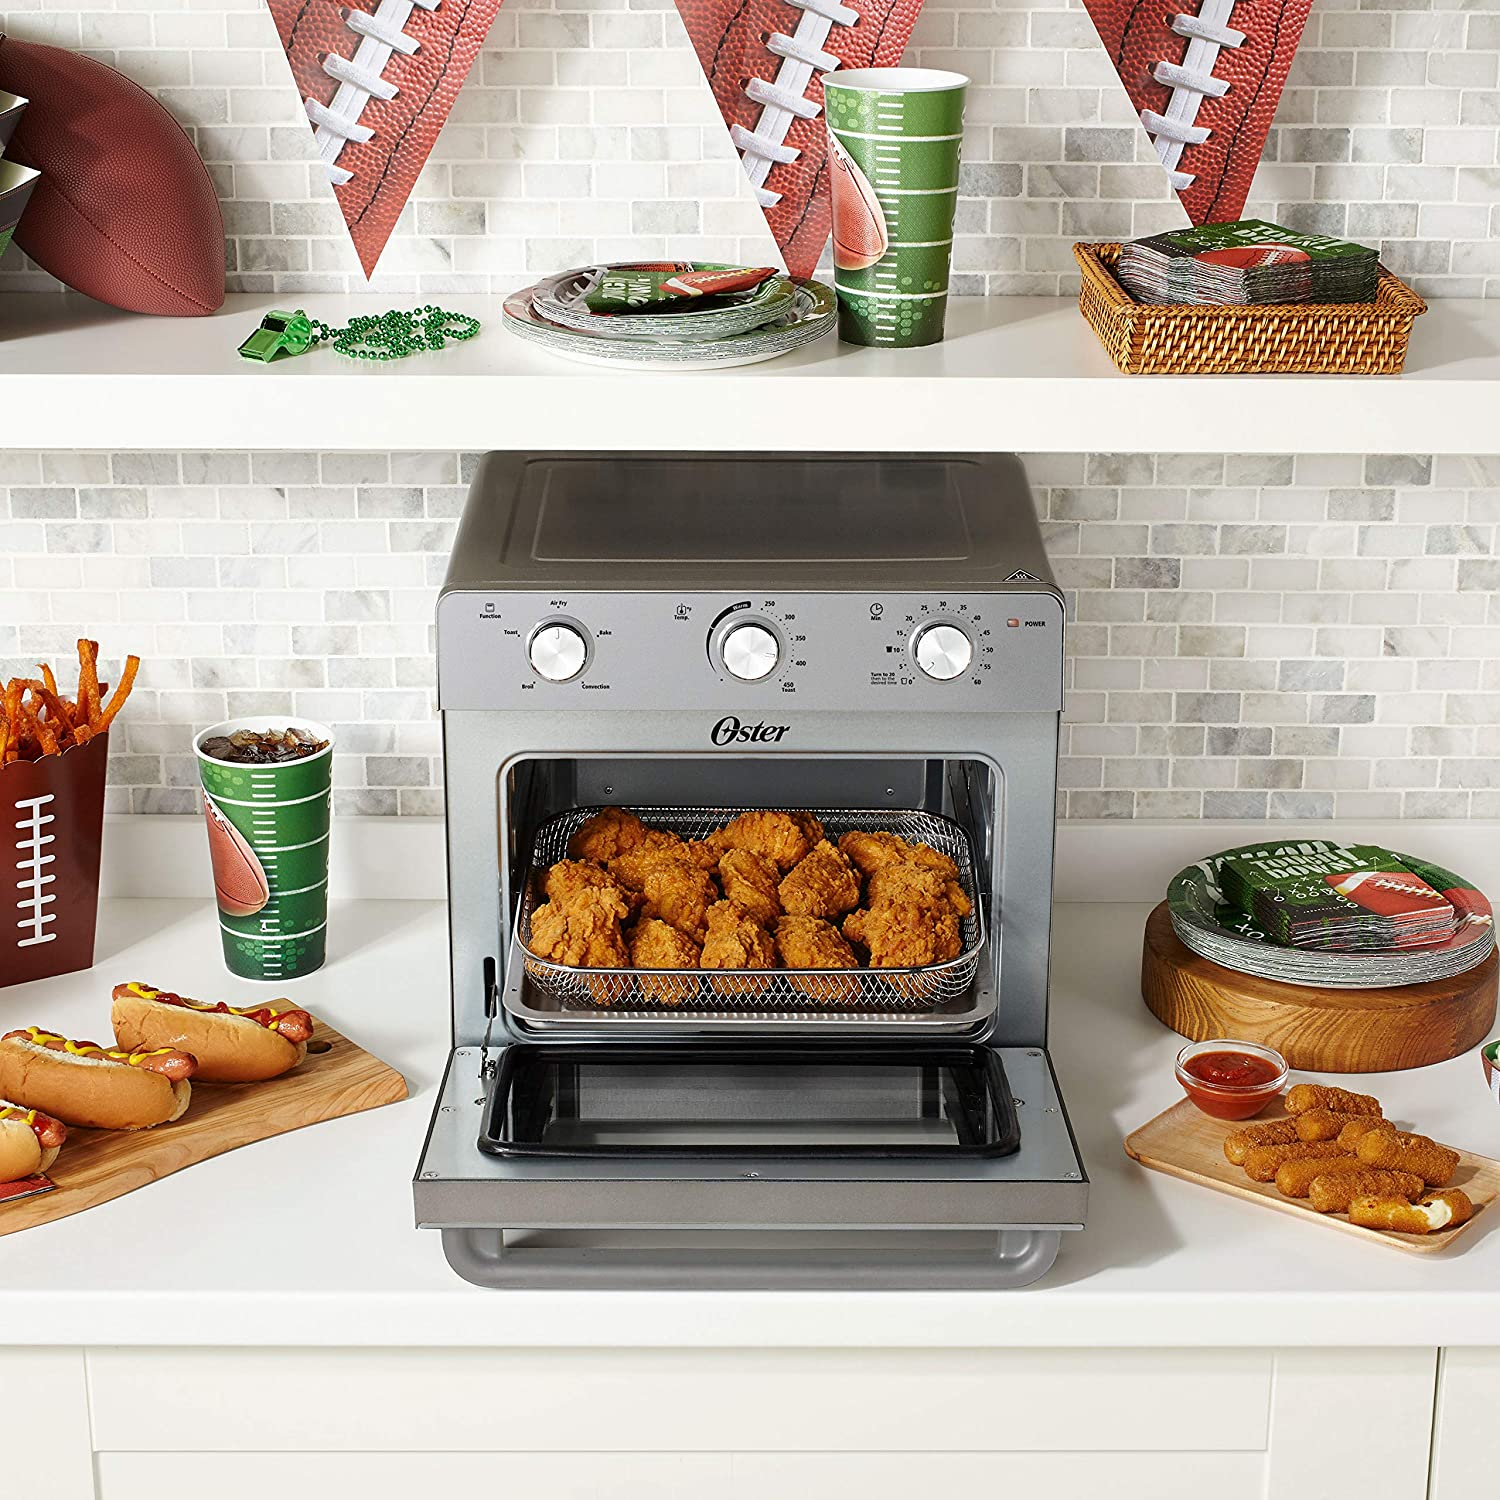 Oster Countertop Oven with Air Fryer Kitchen & Dining Fryers prb ...